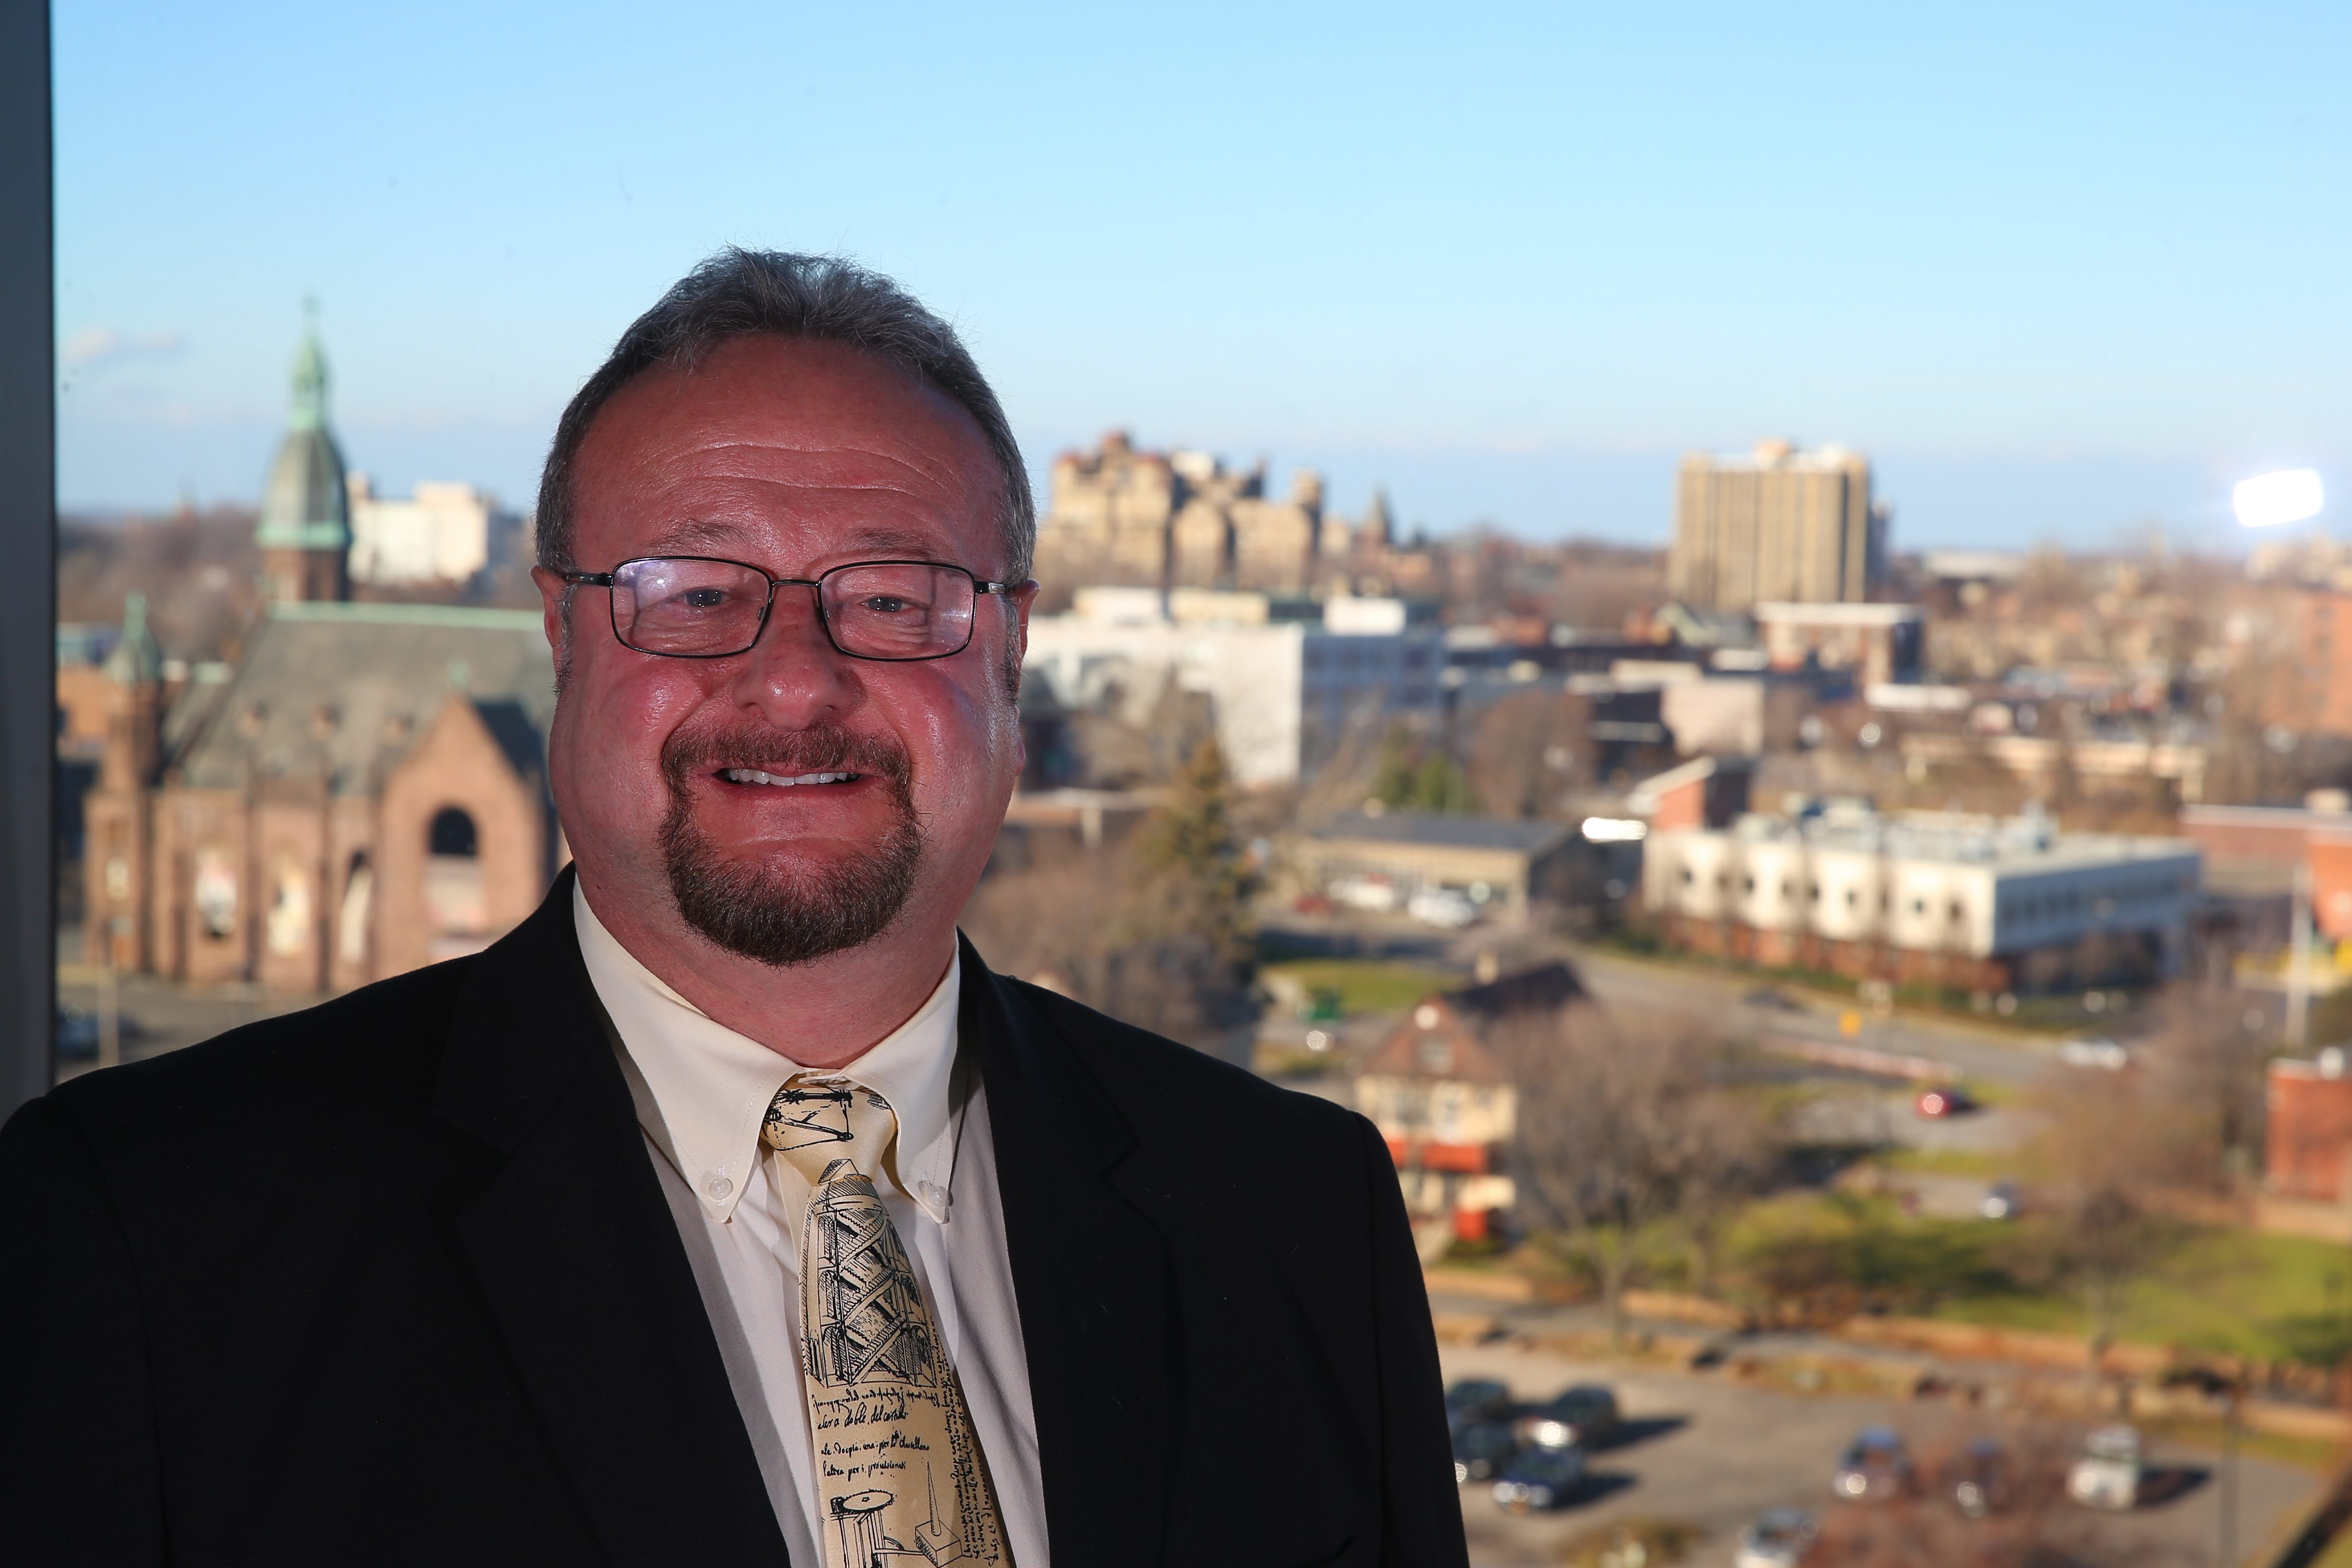 Prospectus story about healthcare and the new buffalo. Elkin is a physician/researcher in bioinformatics recruited to Buffalo who saw a huge opportunity here for growth in the sciences and the city as the medical campus developed at Gates Cardio Vascular in Buffalo, N.Y., on Friday,  Dec. 11, 2015.   (John Hickey/Buffalo News)